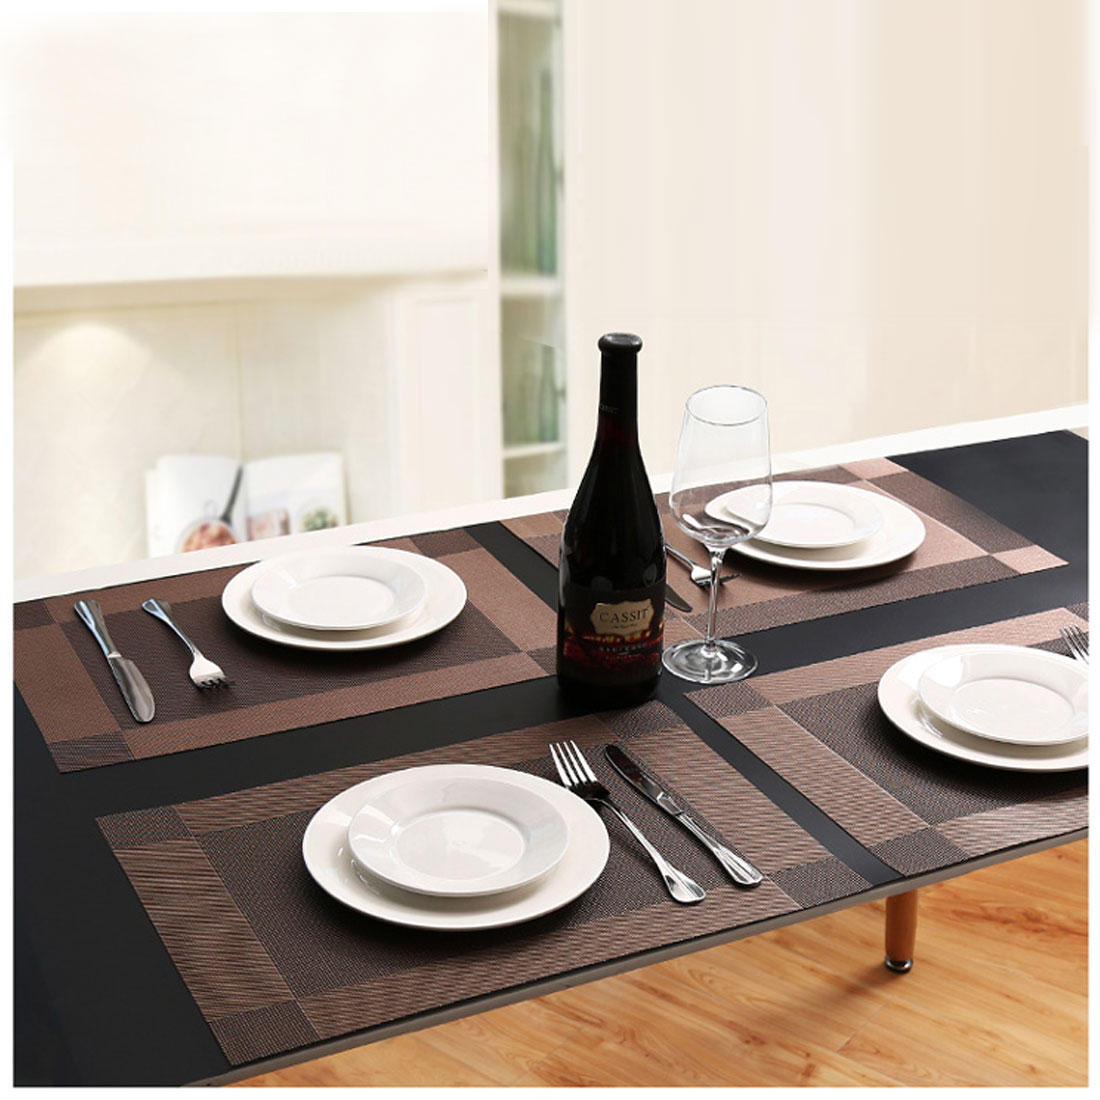 Dining Table Placemats Set of 6 Washable Weave Kitchen ...